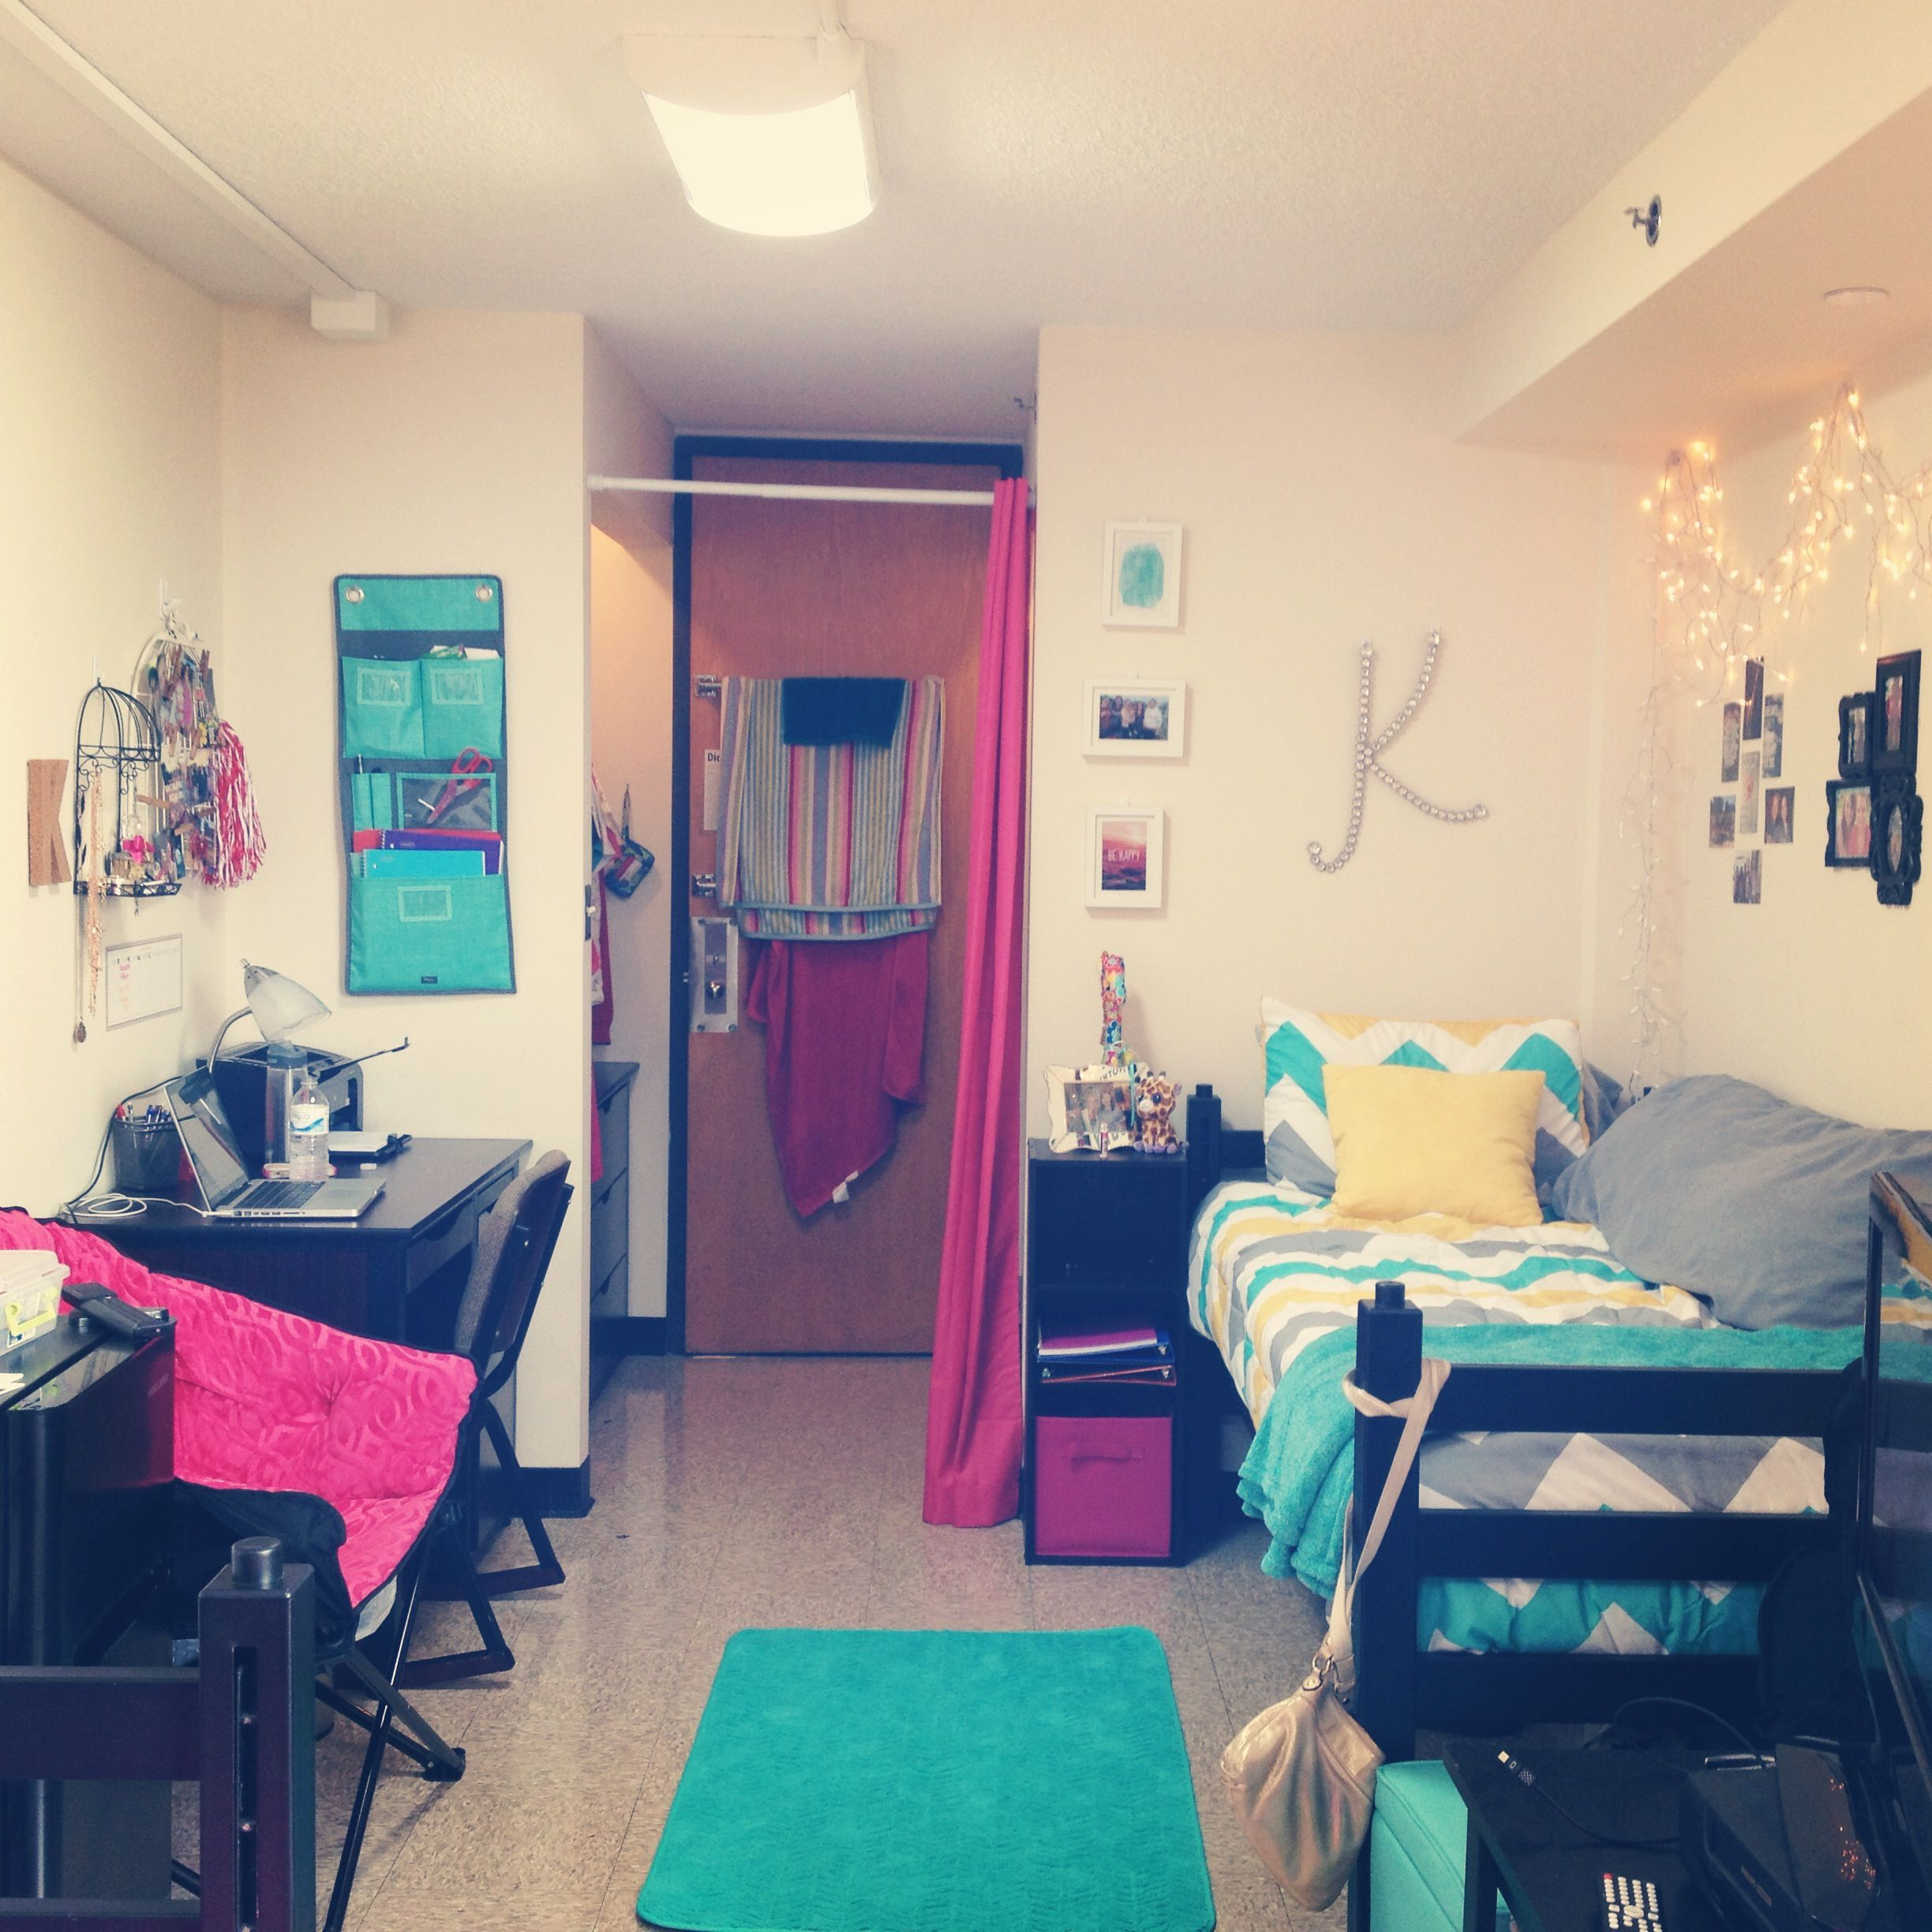 Chevron dorm room watterson towers illinois state university college pinterest illinois - Room e ...